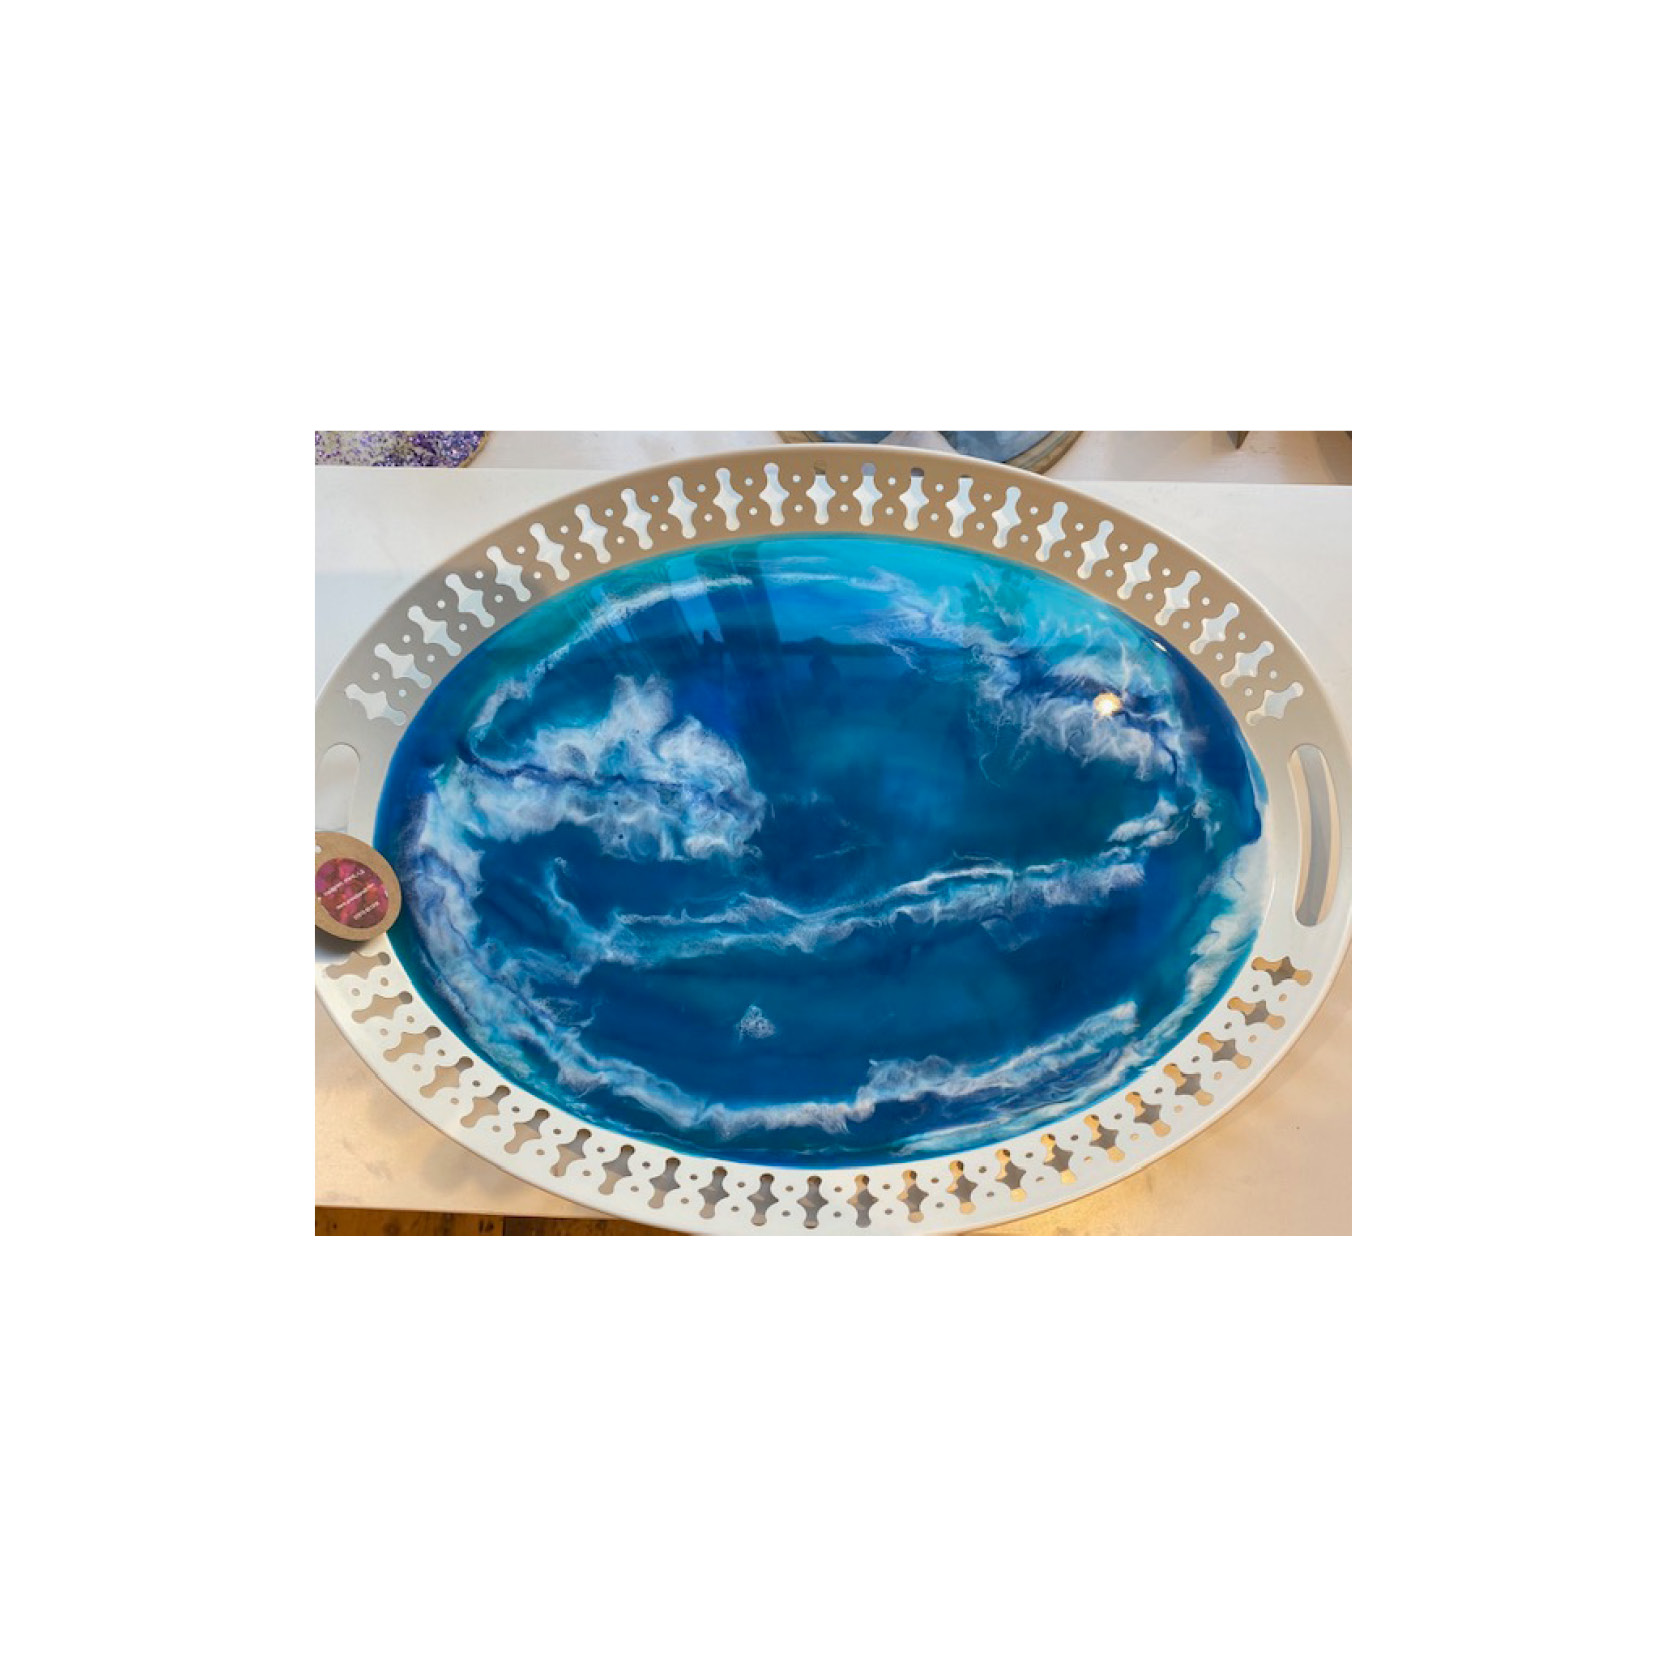 Chantal - Oval metal resin tray OMRT